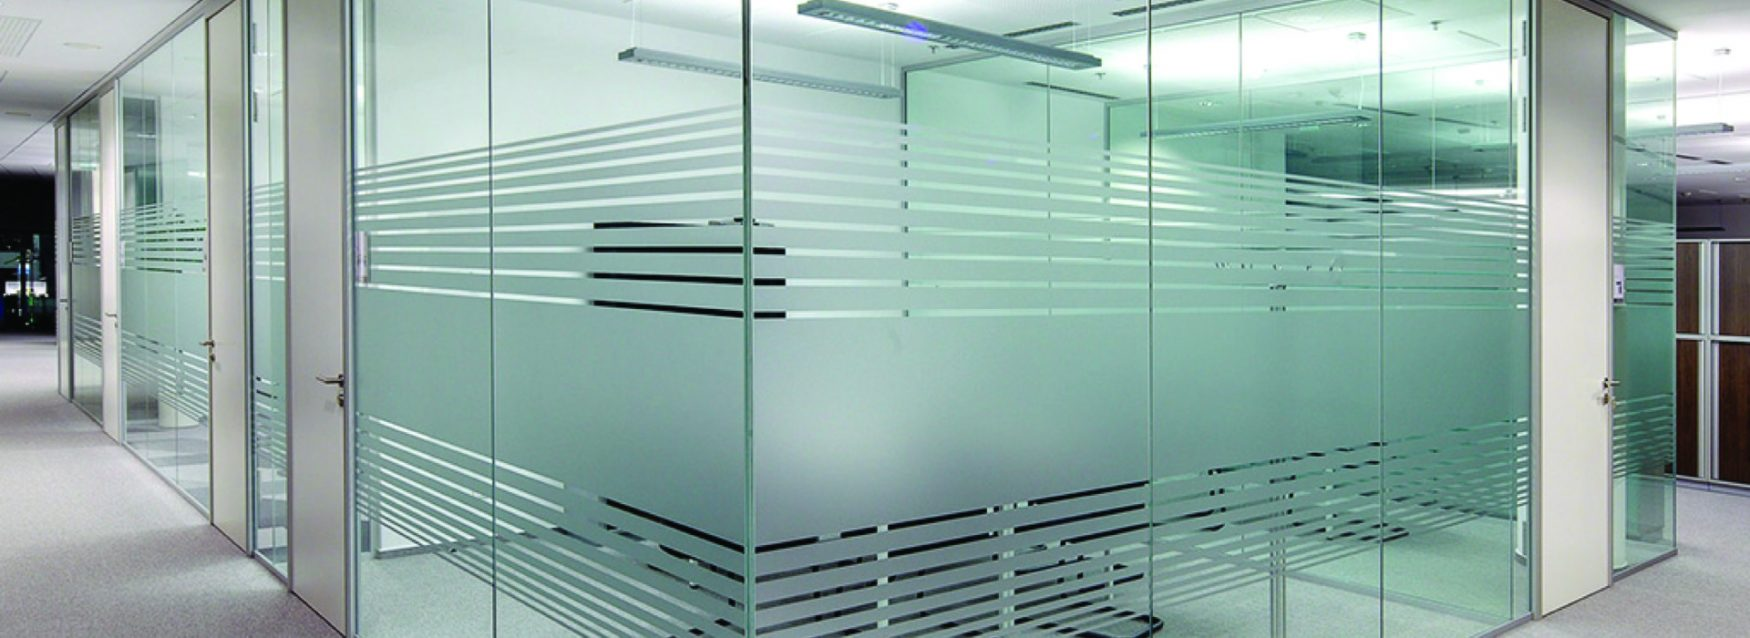 Design and Function Combined with Frosted Glass Privacy Film